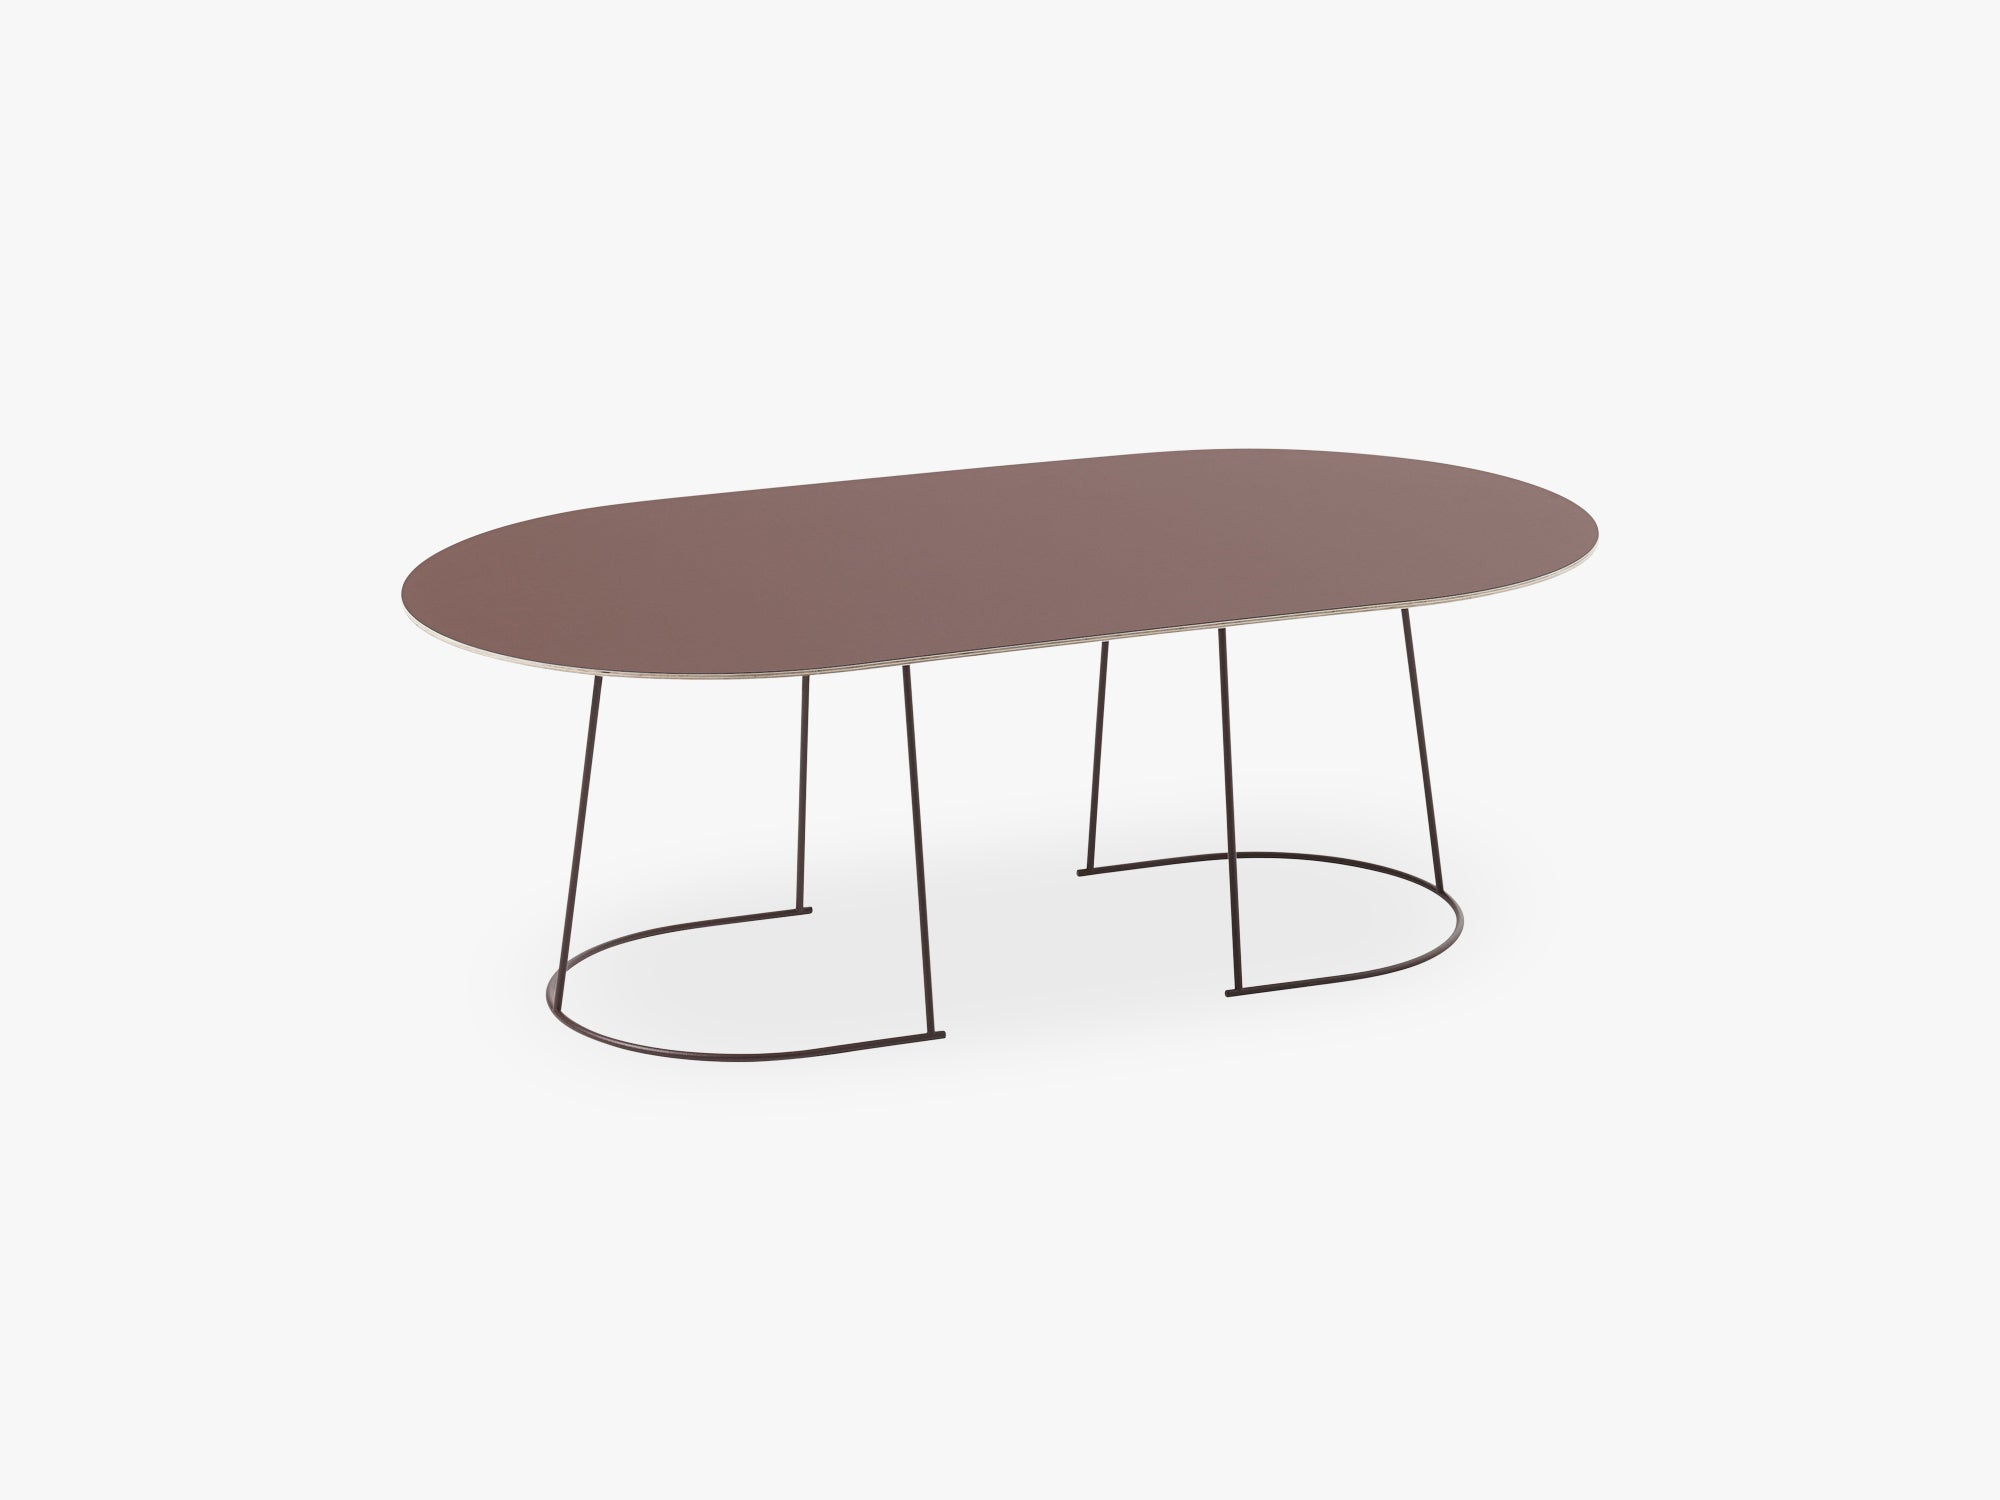 Airy Coffee Table - Large, Plum - Nanolaminate fra Muuto